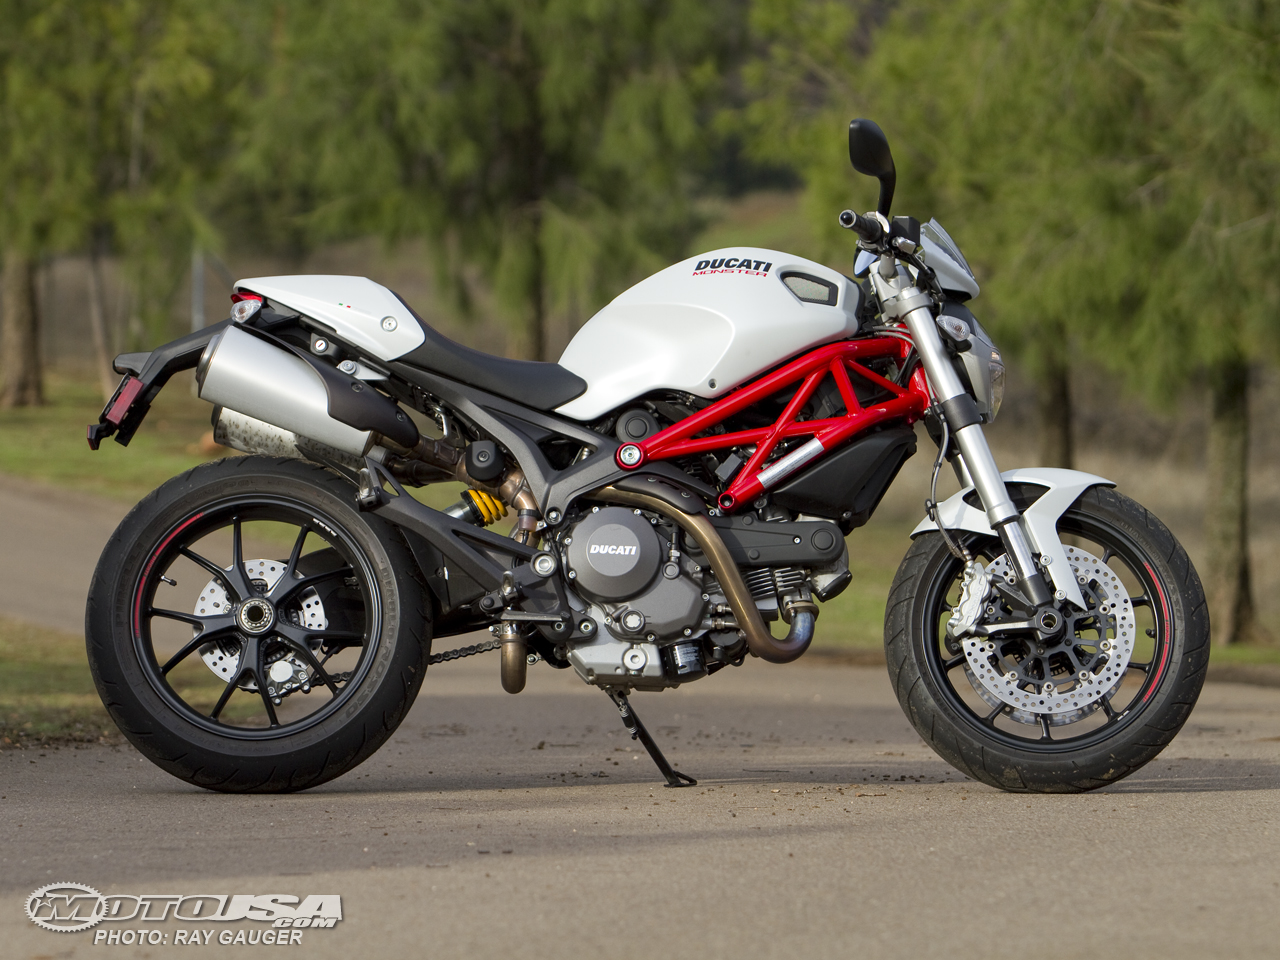 Ducati Hypermotard 796 2011 images #79588